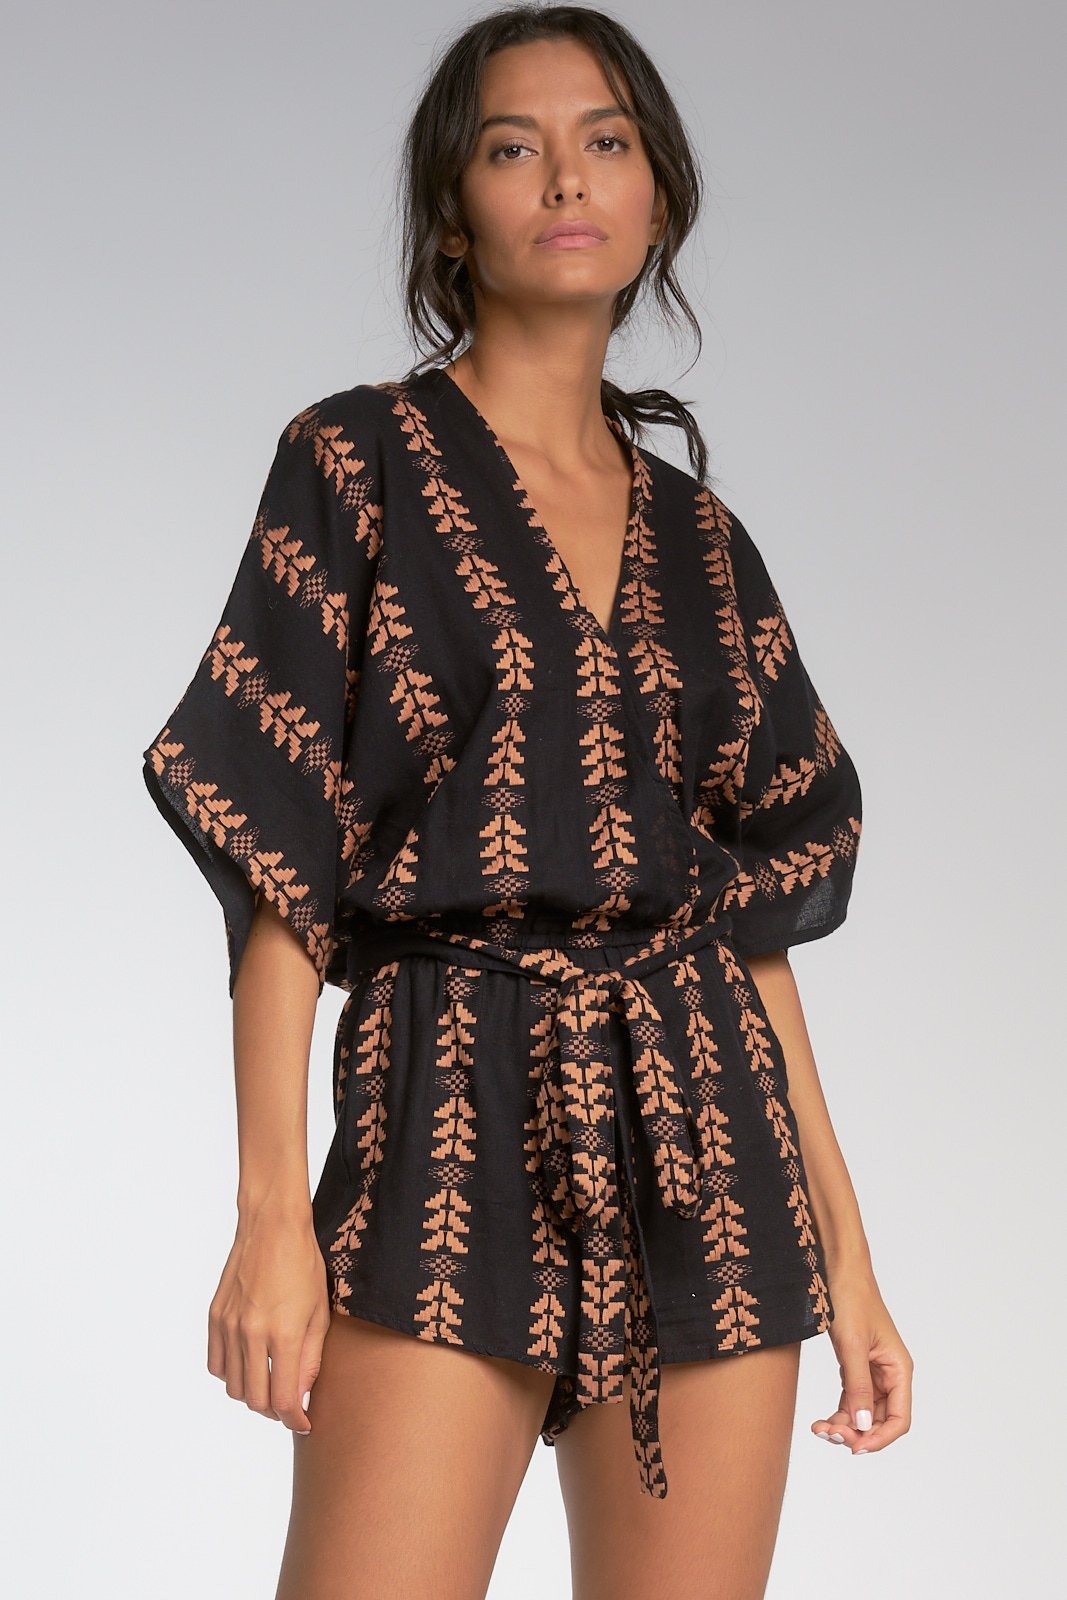 On the Straight and Arrow Print Romper